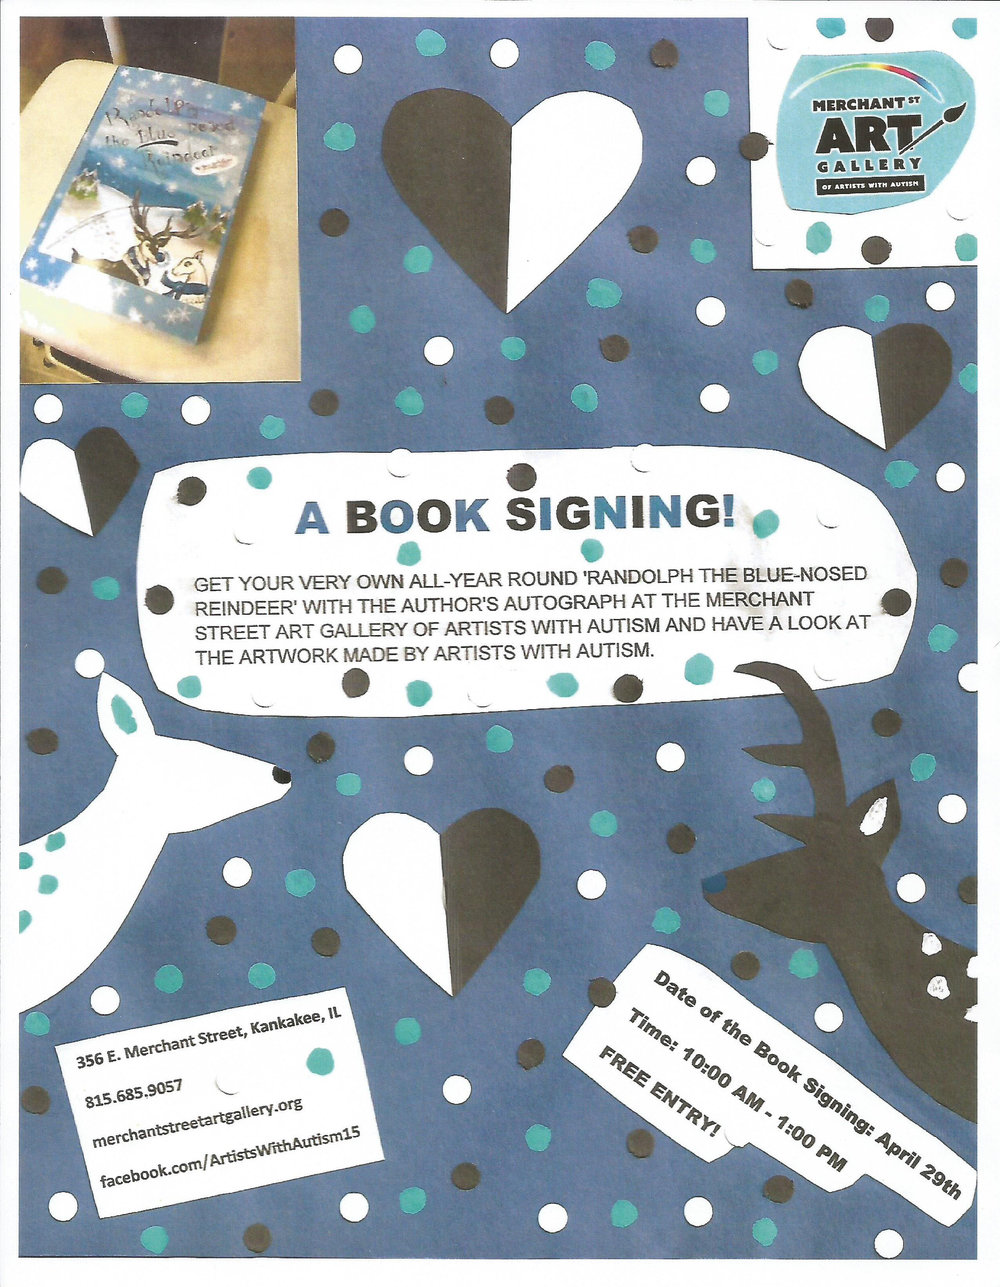 A Book Signing! April 29 @ 10:00-1:00 Free Entry